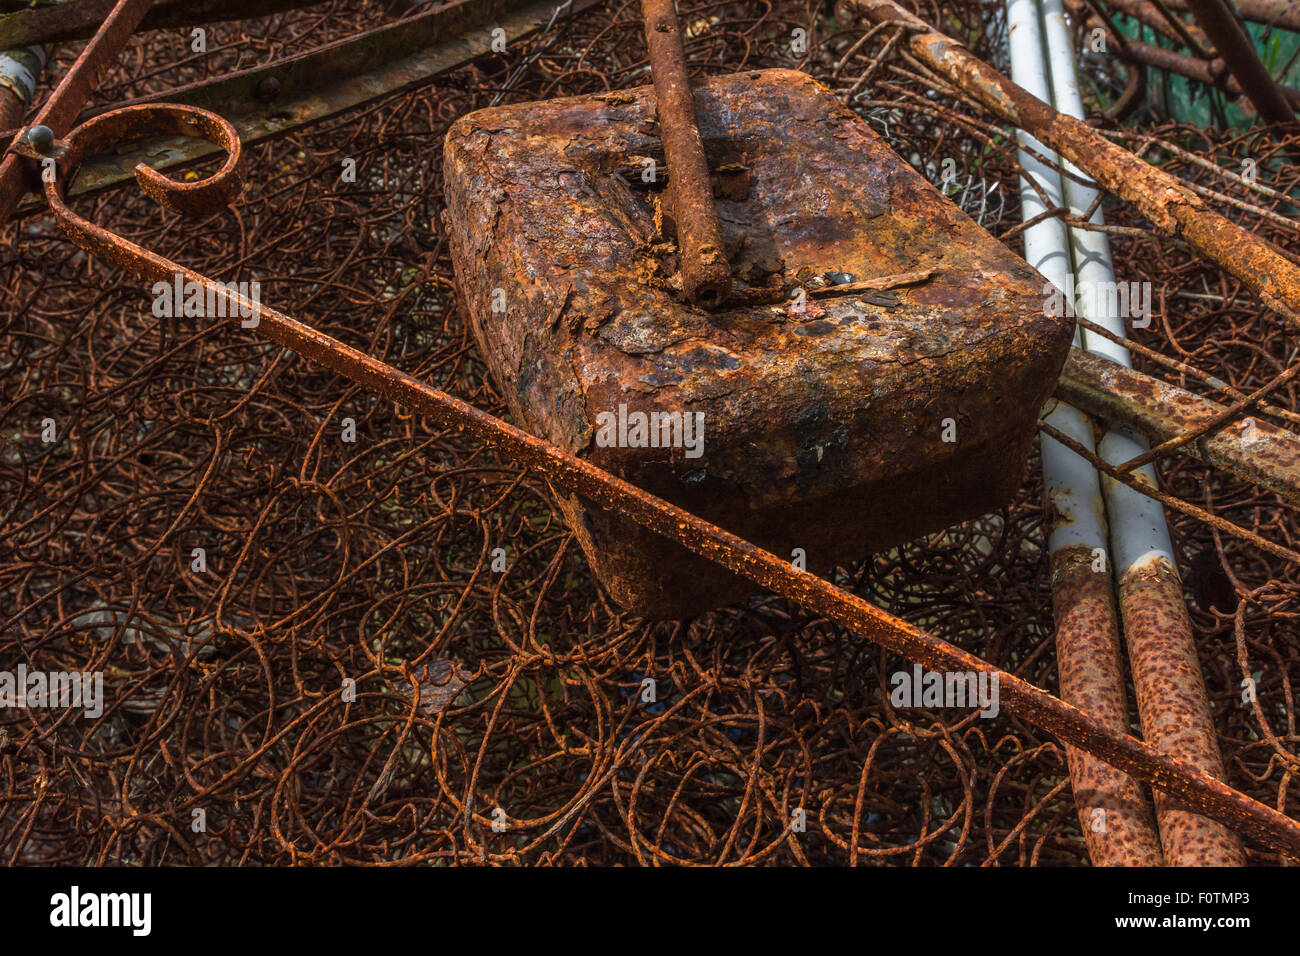 Rusty Iron Work Old Cash Box And Mattress Springs Abstract Metal Stock Photo Alamy